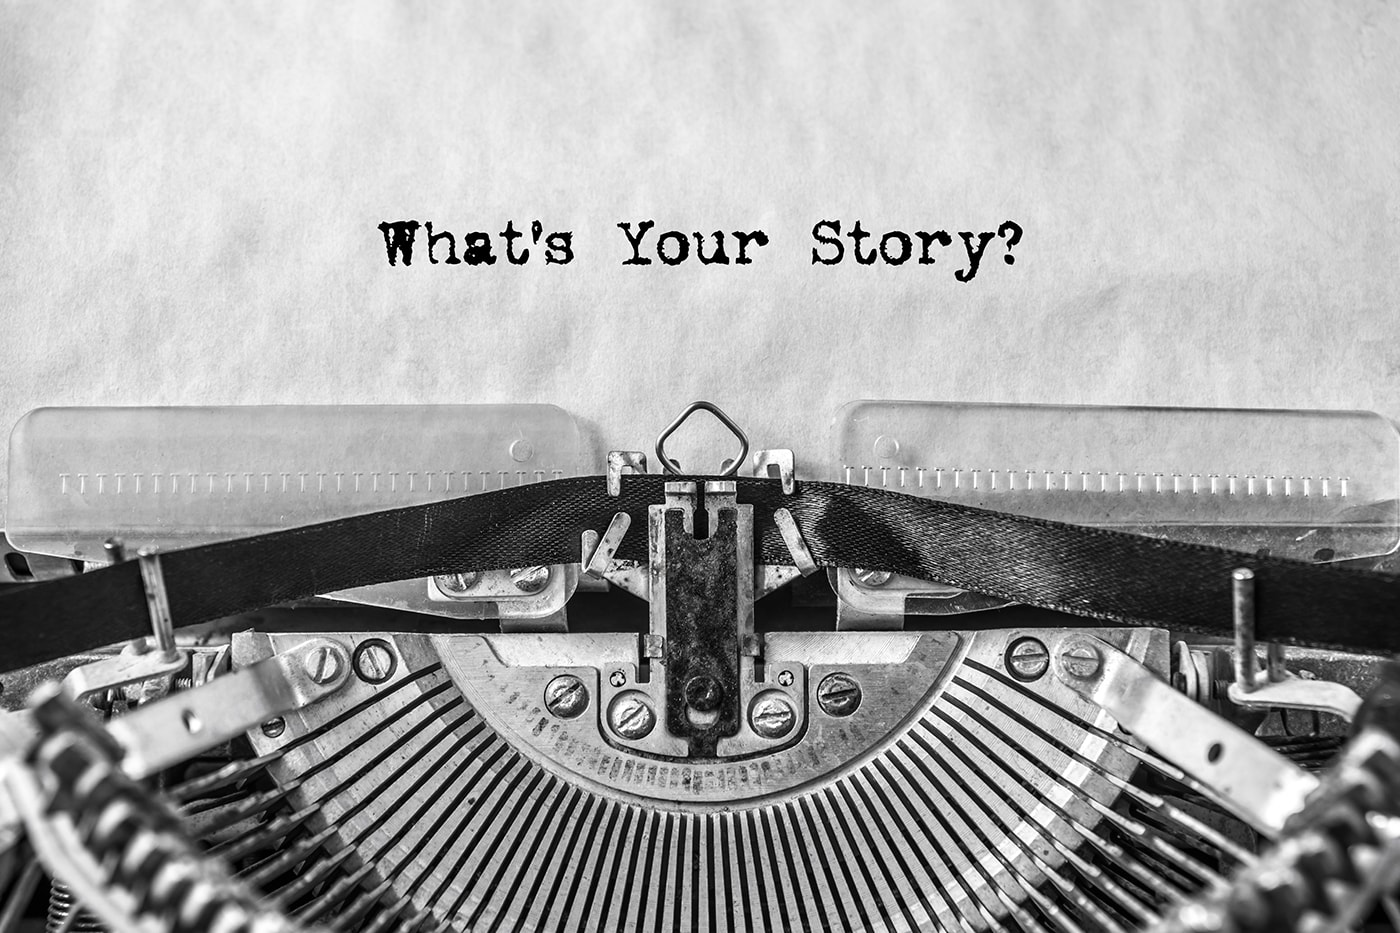 whats-your-story - Mathilde Vermer